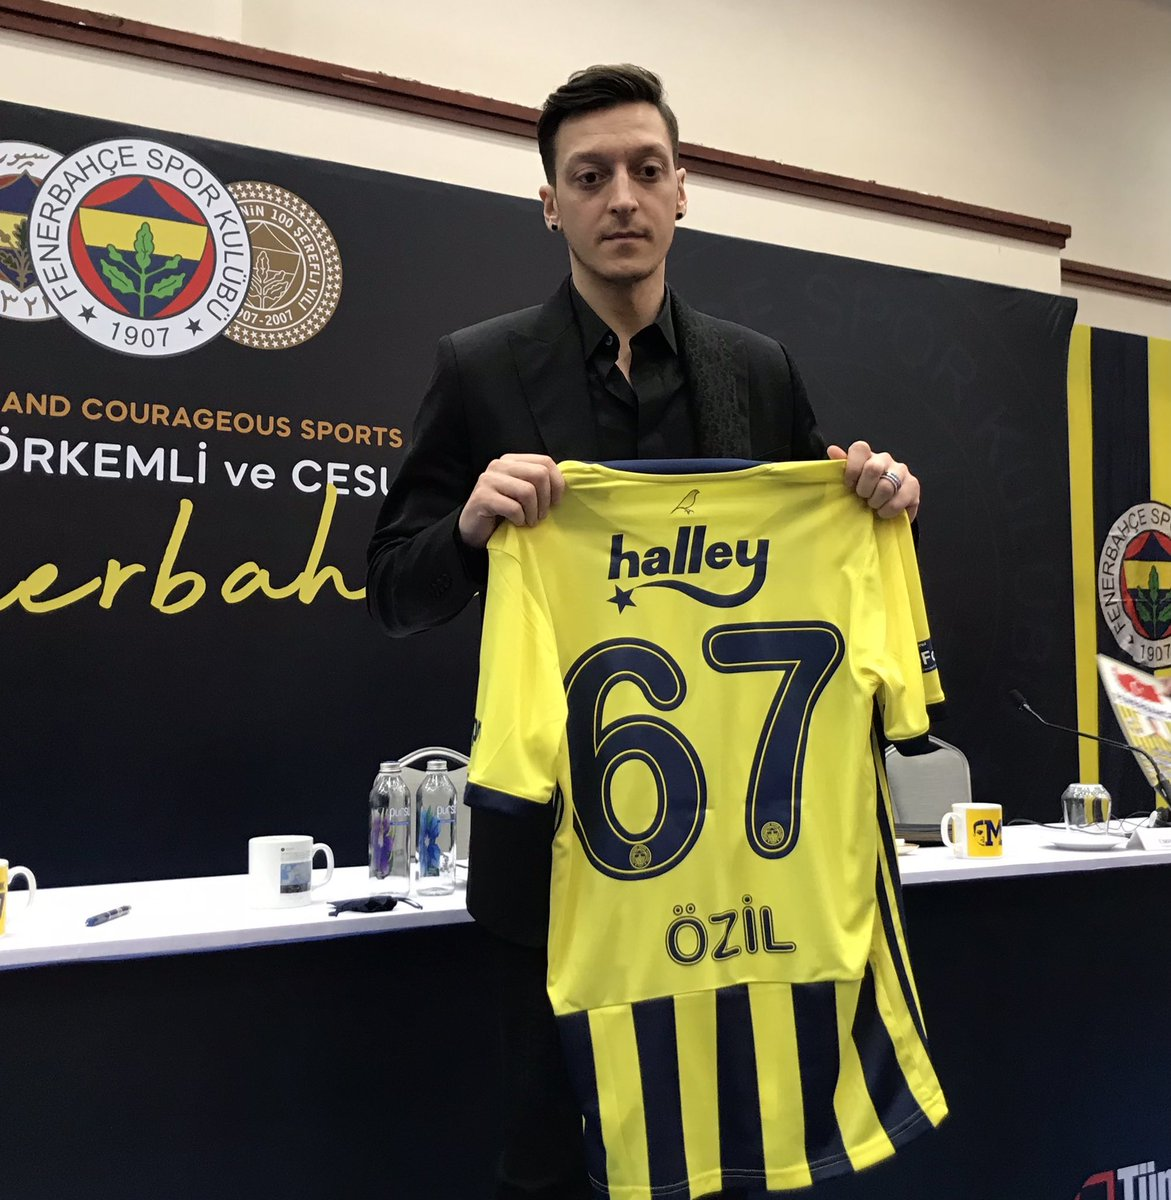 Mesut Özil has been presented to the media after his move to Fenerbahçe was confirmed. https://t.co/DYq5uCUTia